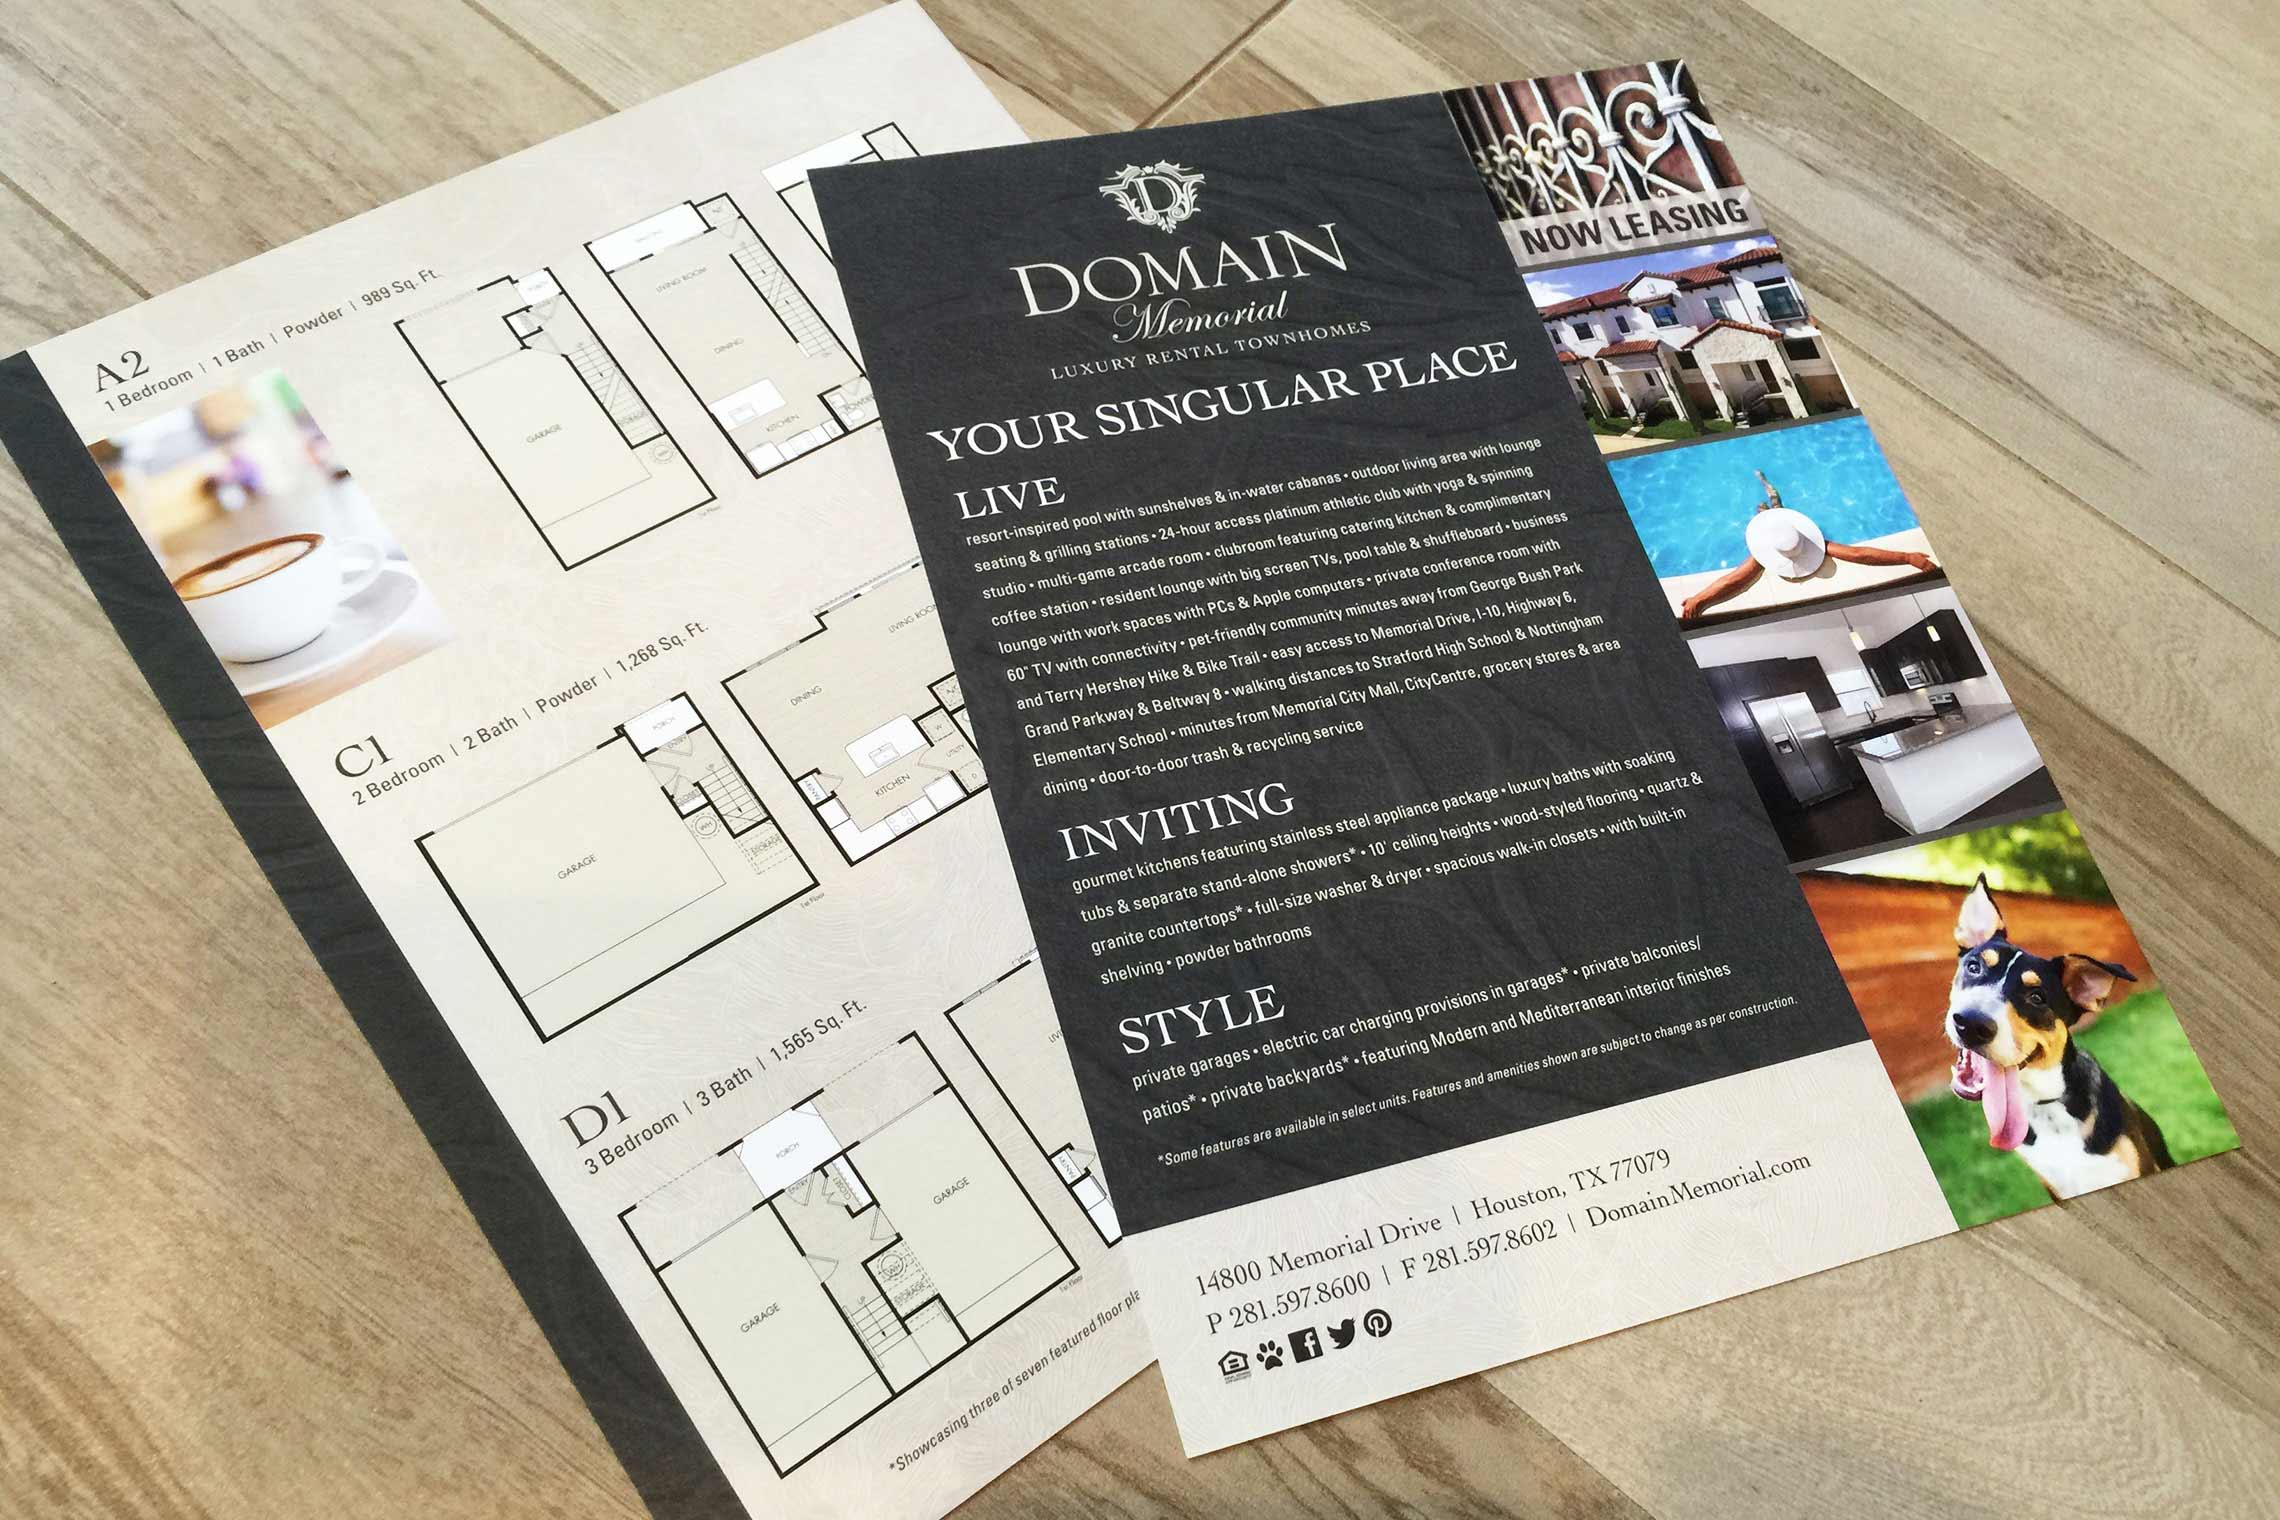 Domain Memorial Luxury Rental Townhomes - Flyer Front and Back